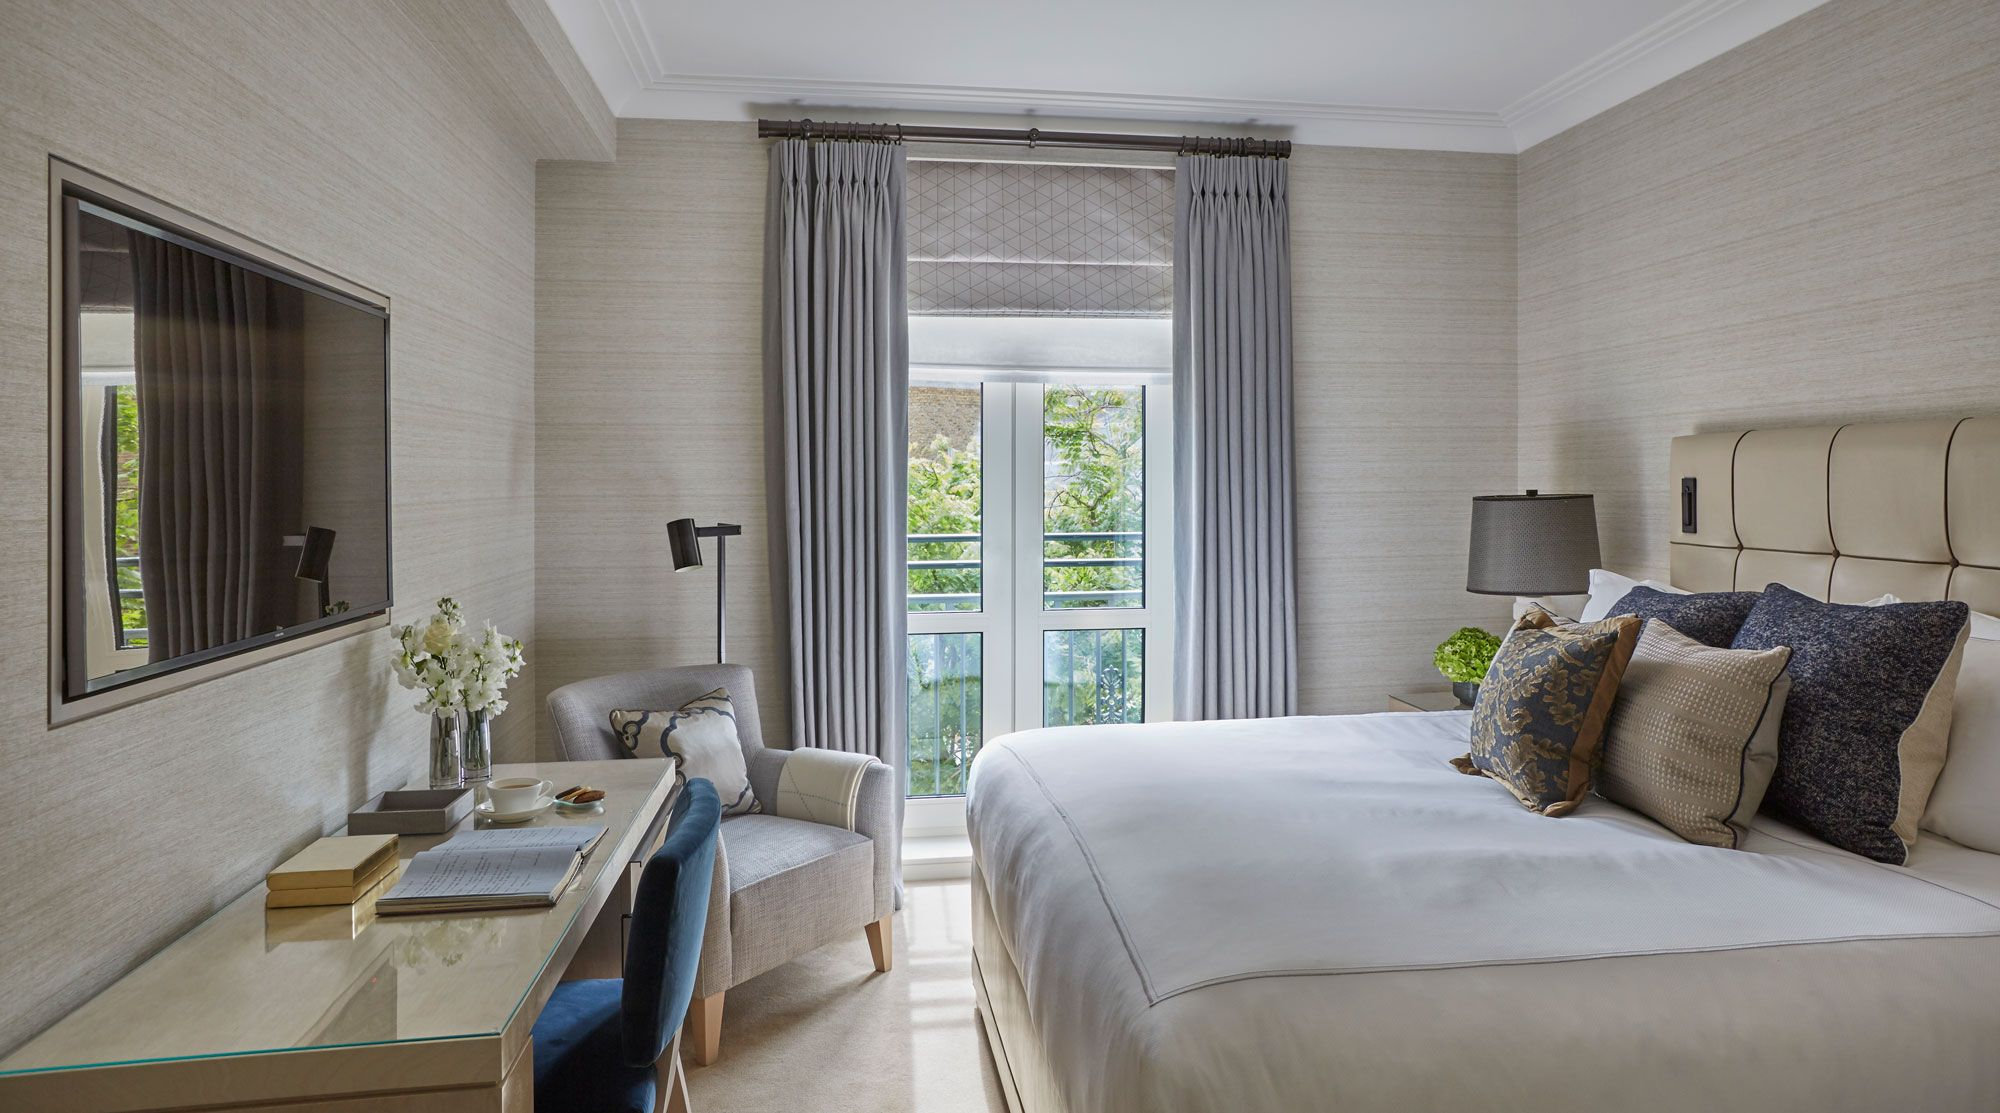 Places A Suite at the Berkeley Hotel London by Helen